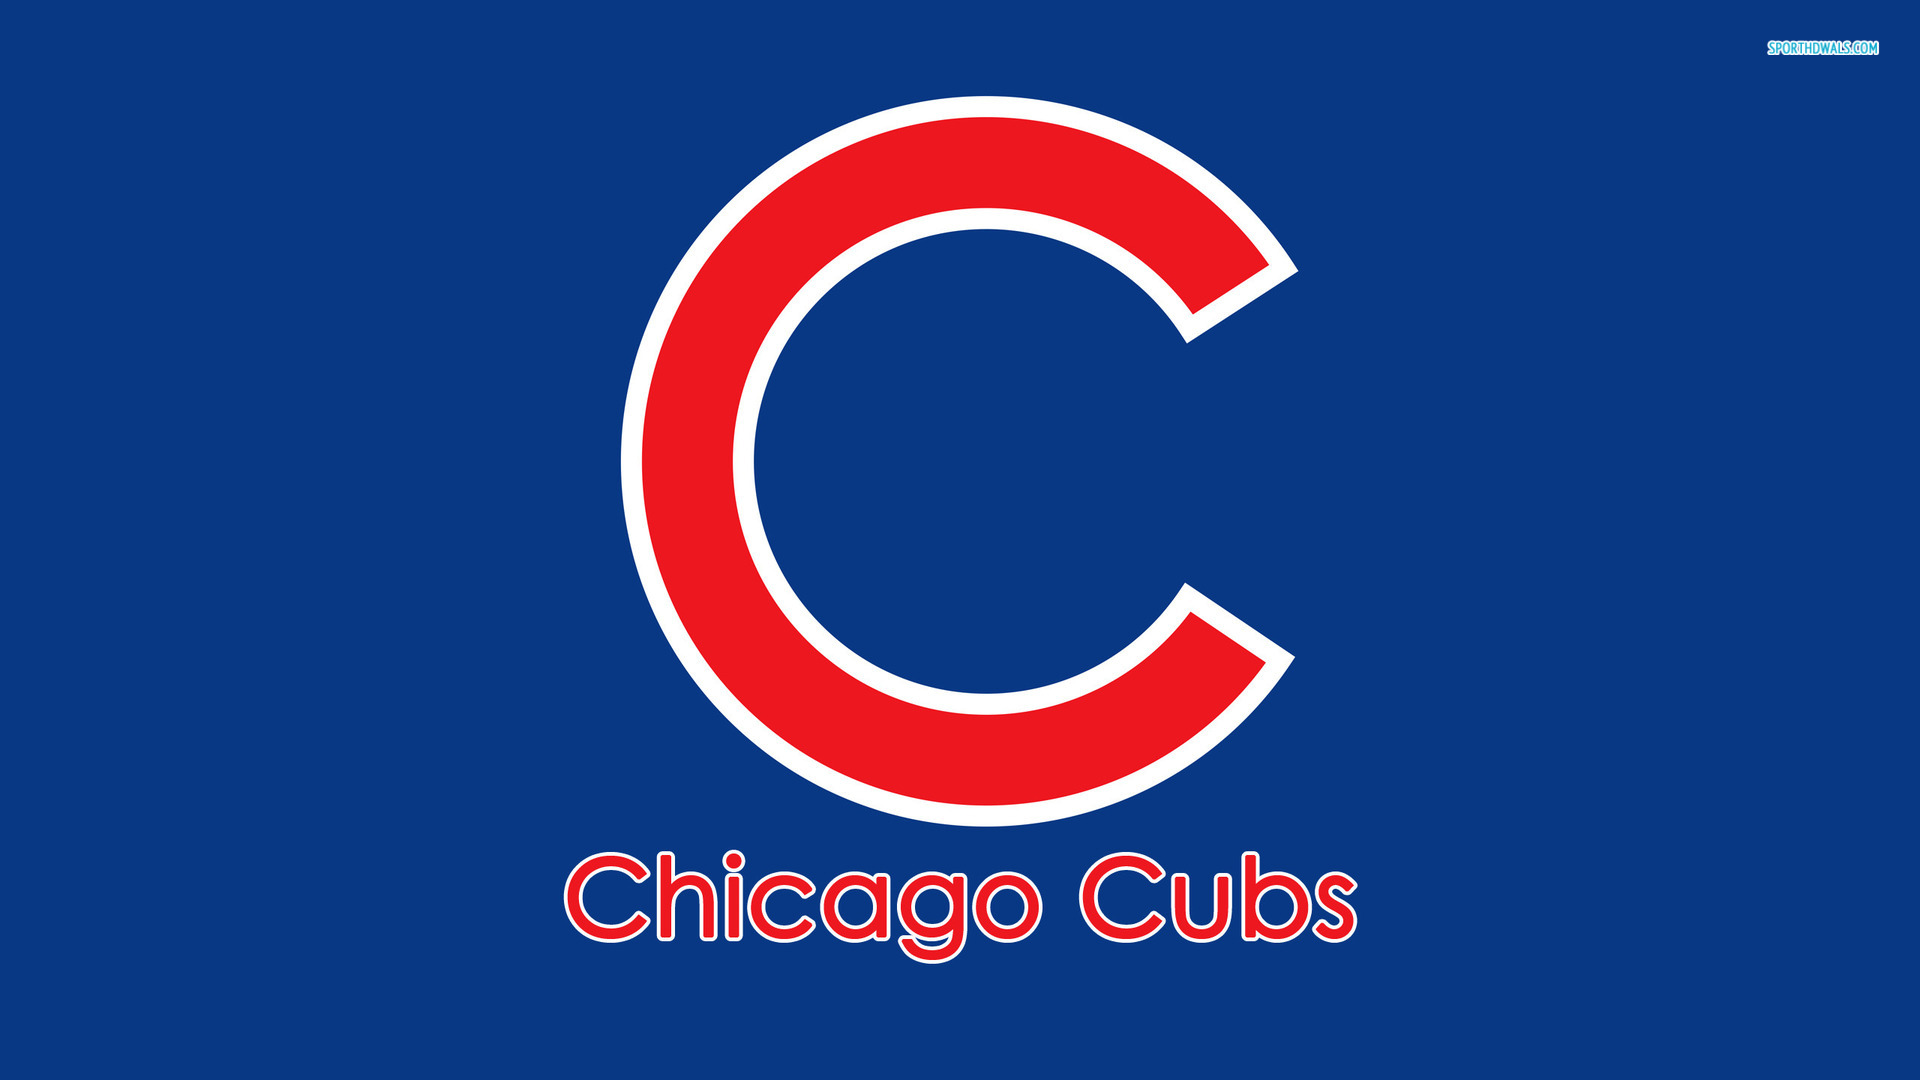 Chicago Cubs wallpaper Chicago Cubs wallpapers 1920x1080